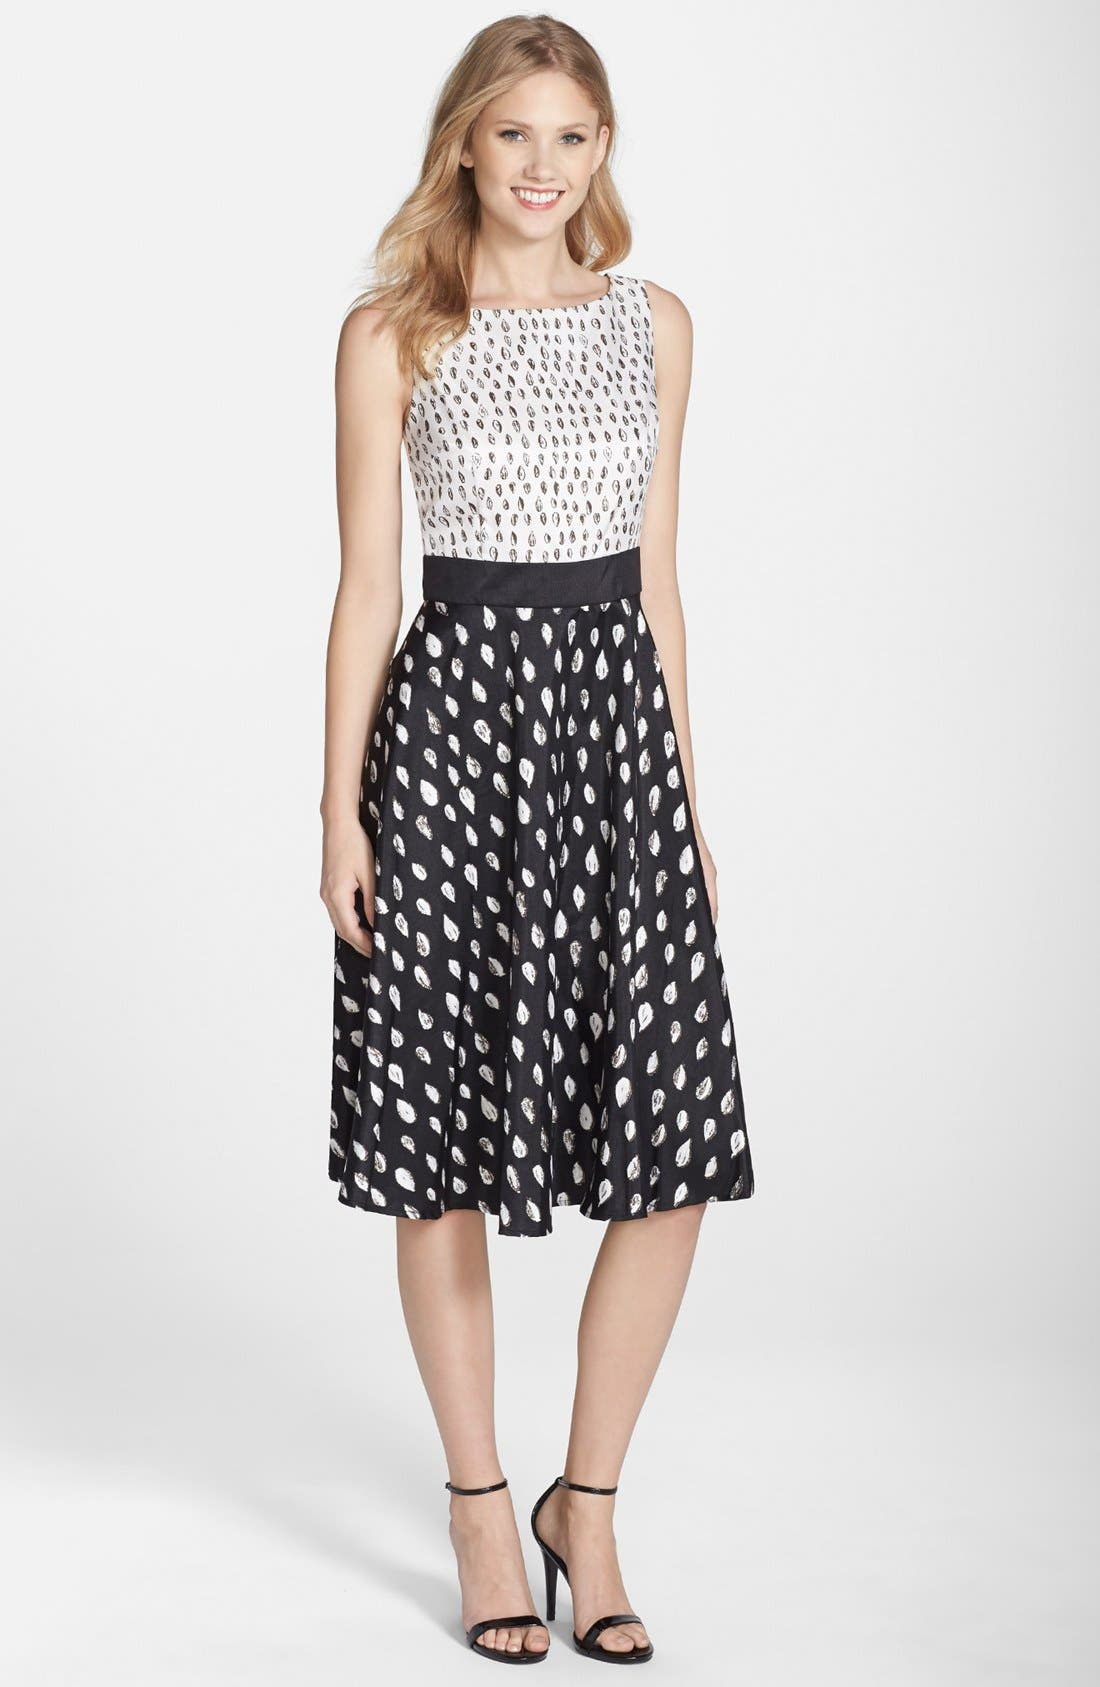 Main Image - Gabby Skye Print Shantung Fit & Flare Dress